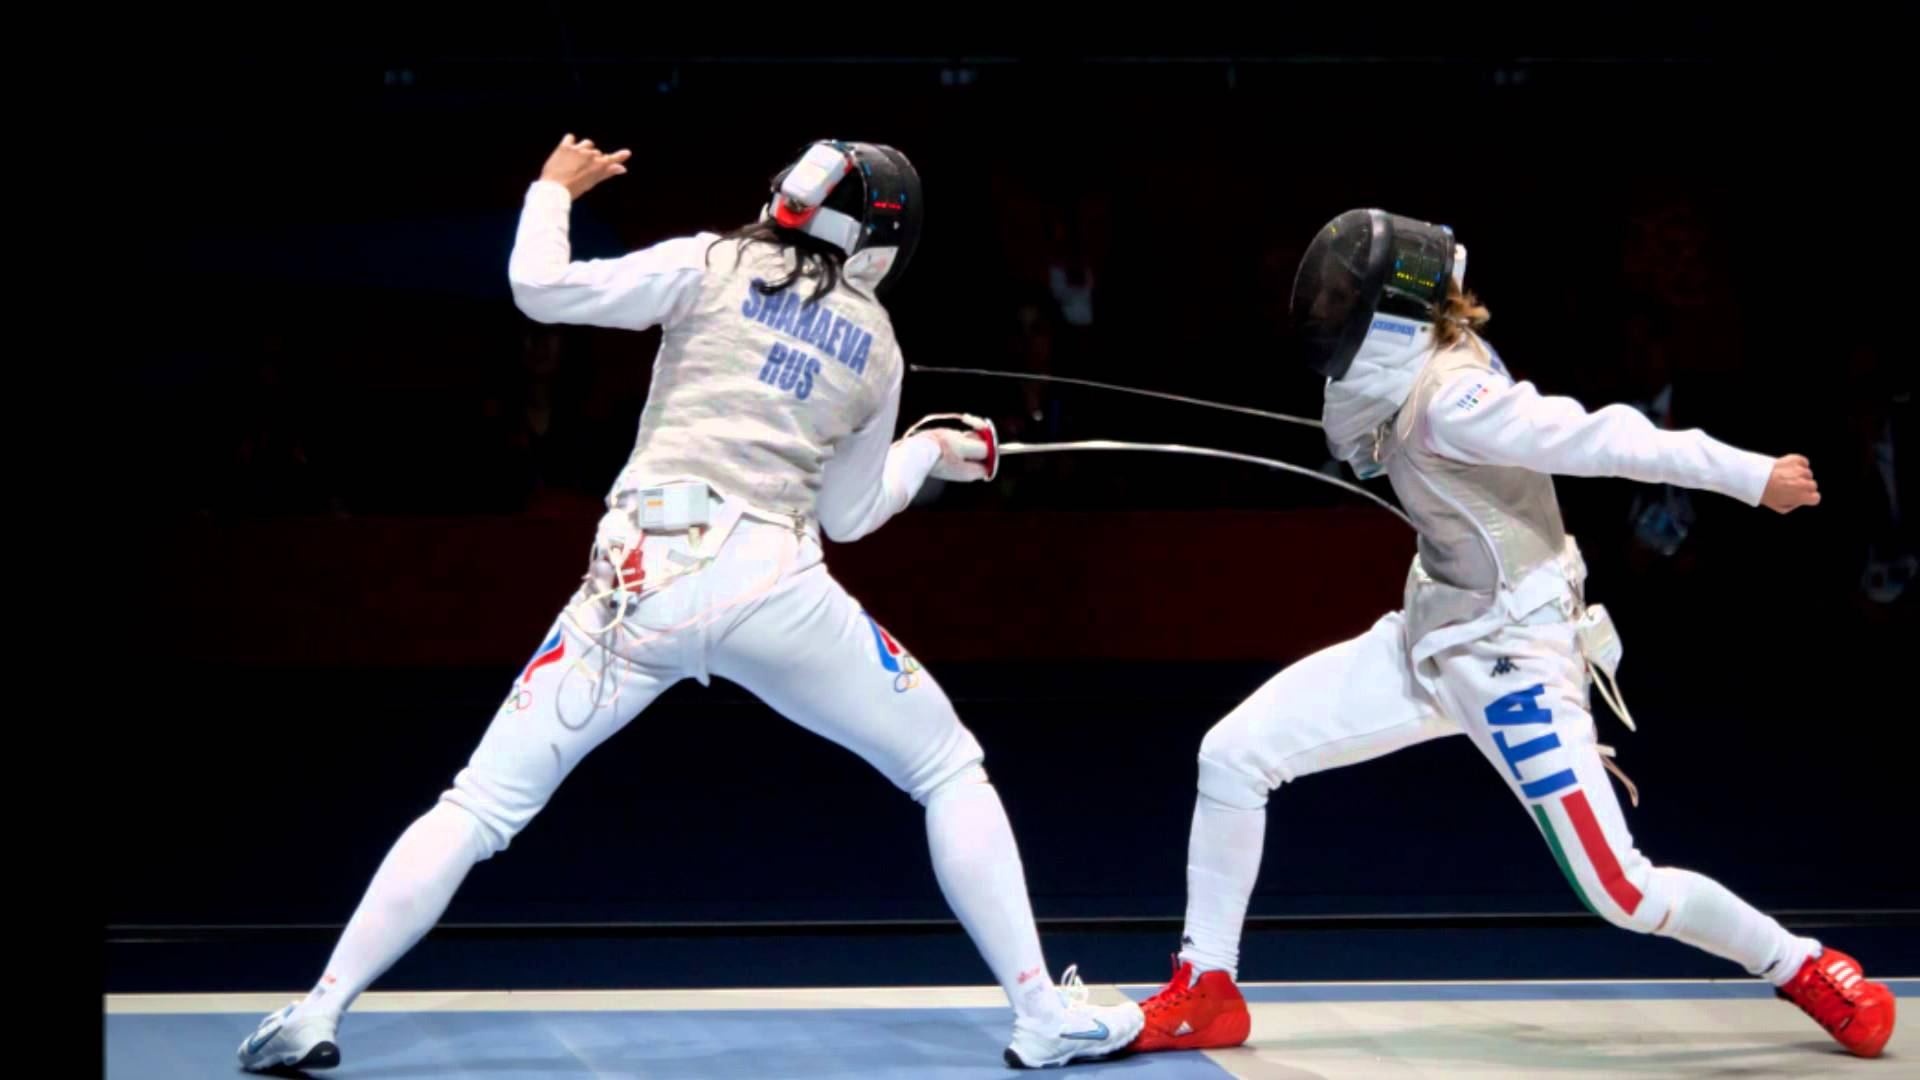 Fencing HD Wallpapers 27781 - Baltana